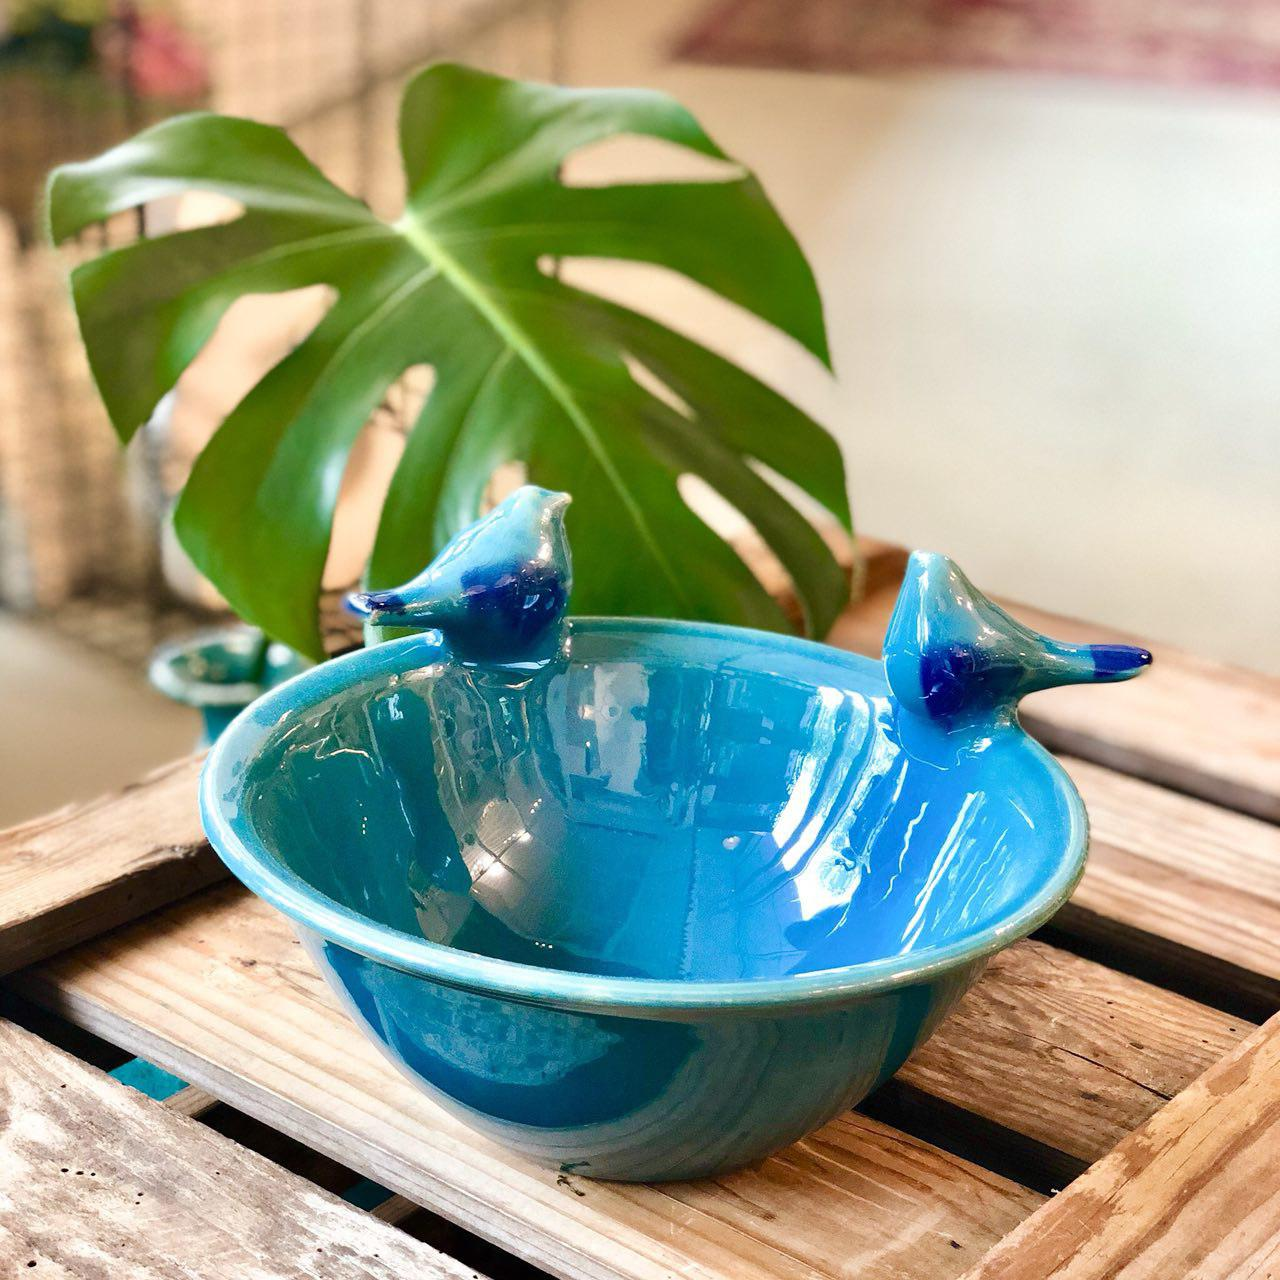 Khakab hanmade ceramic bowl with two birds delwan (available in 2 patterns)